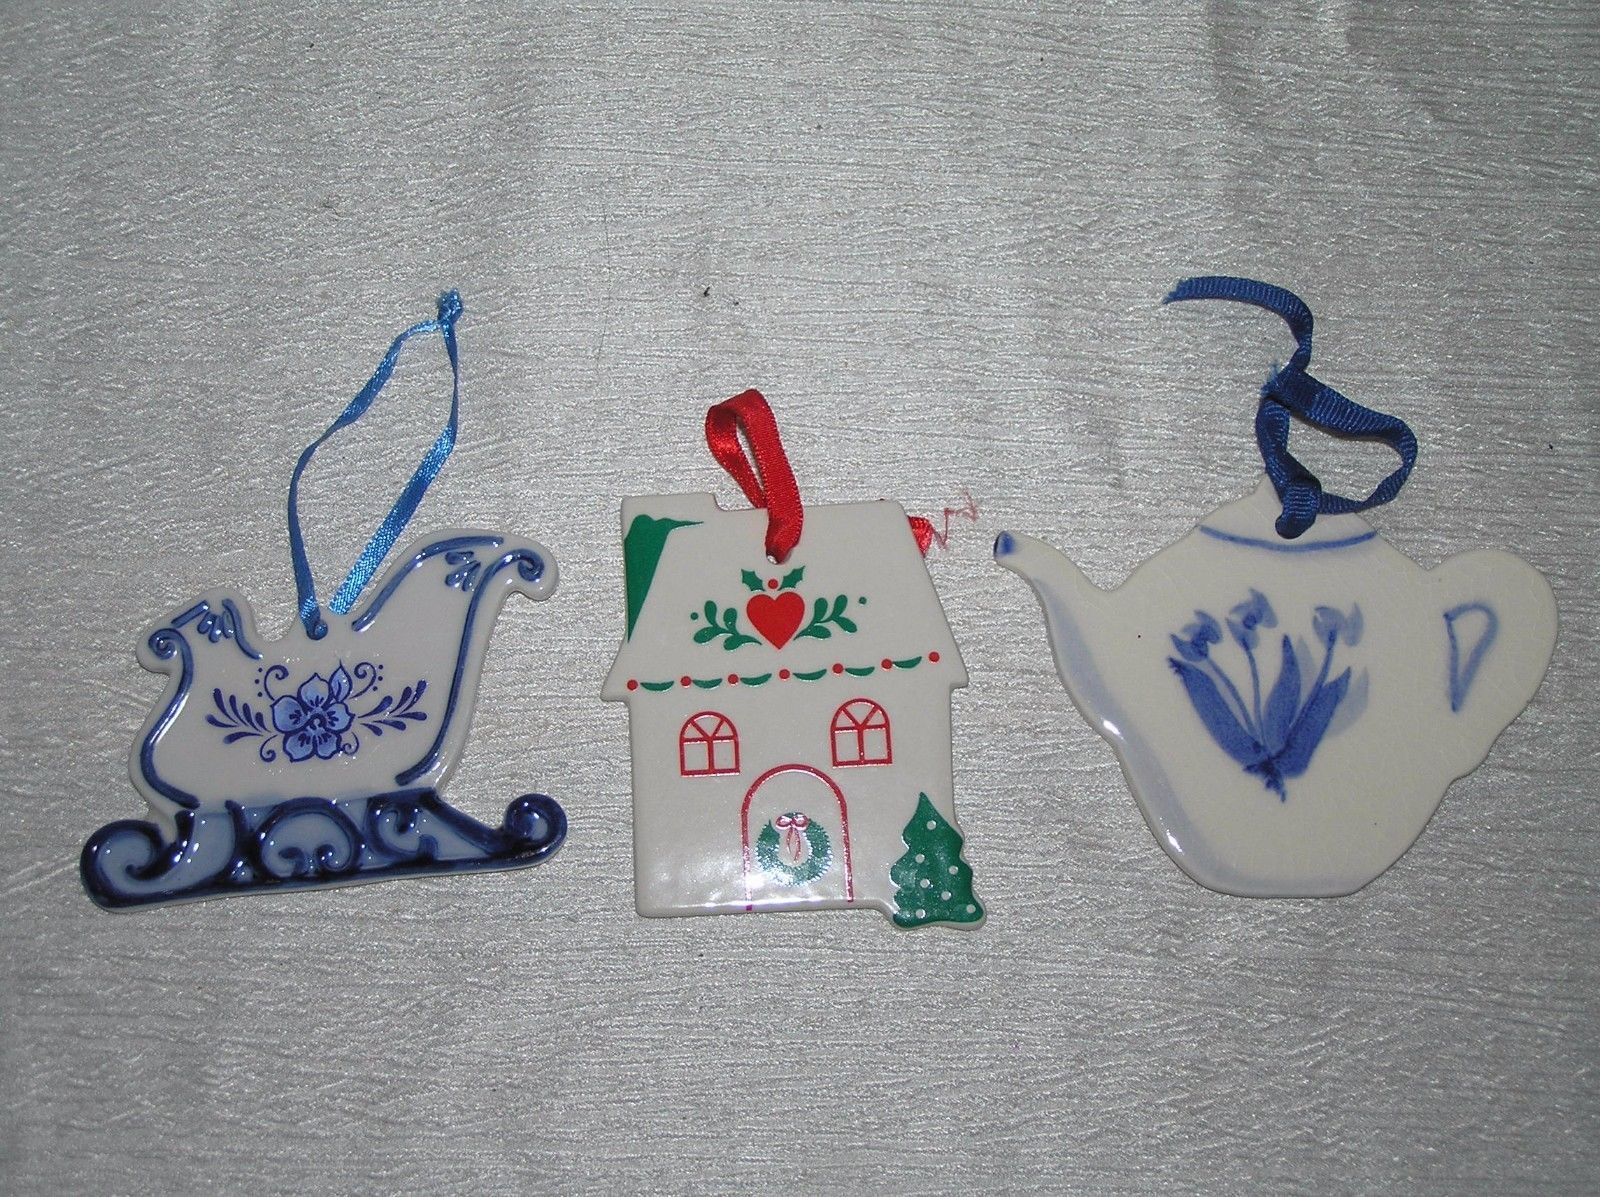 Lot of 3 Blueberry Muffins Blue White Pottery Teapot RUSS Country House SLEIGH